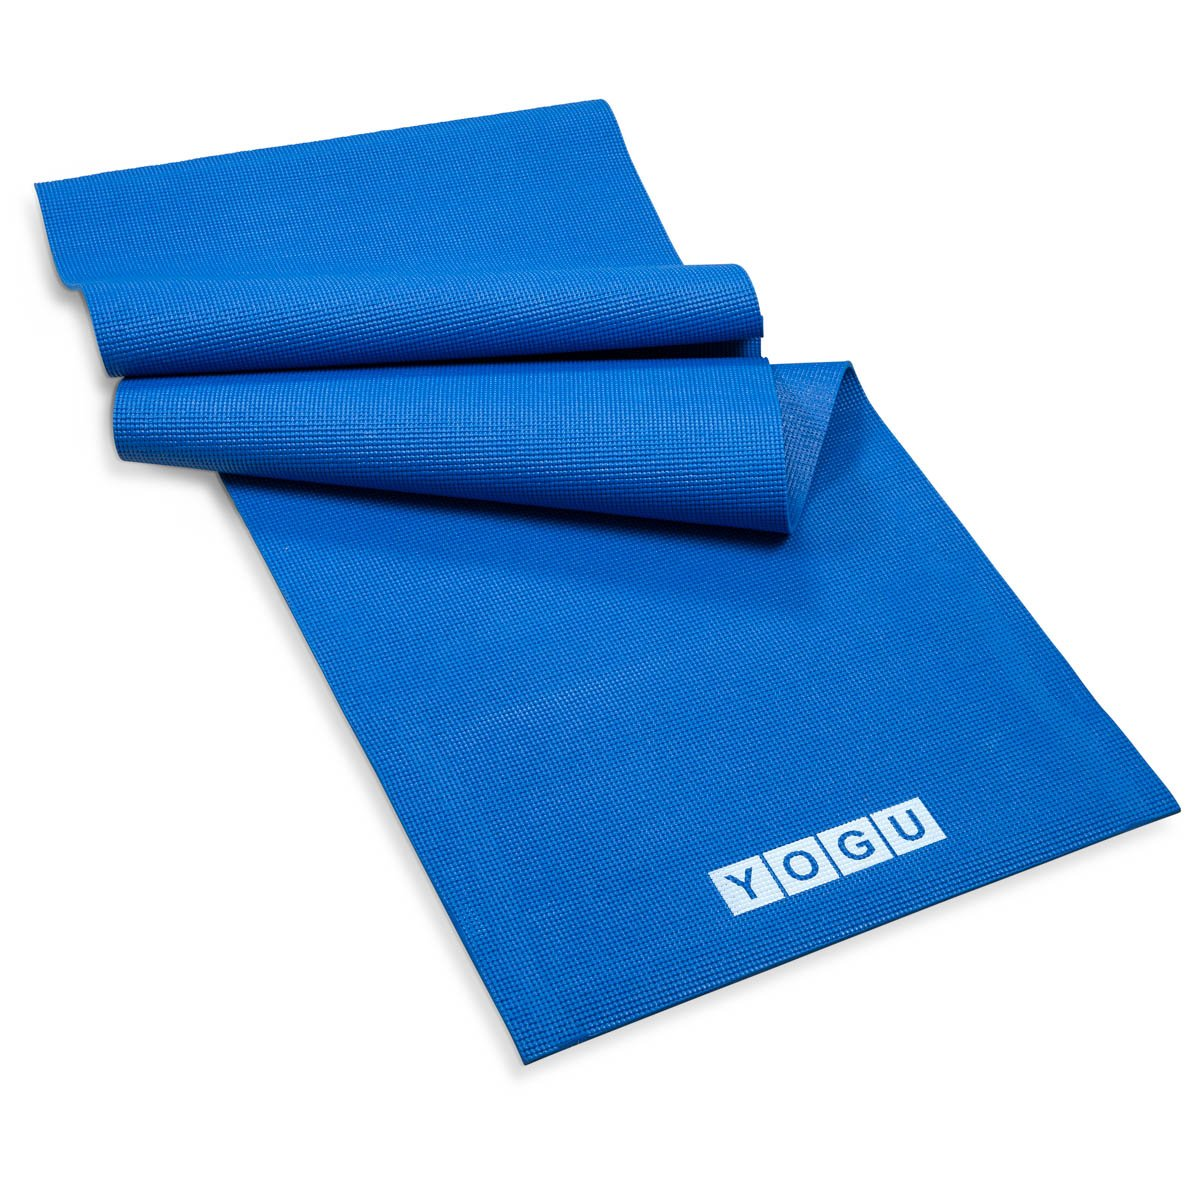 Multi Purpose Workout Fitness Exercise Pilates Yoga Mat